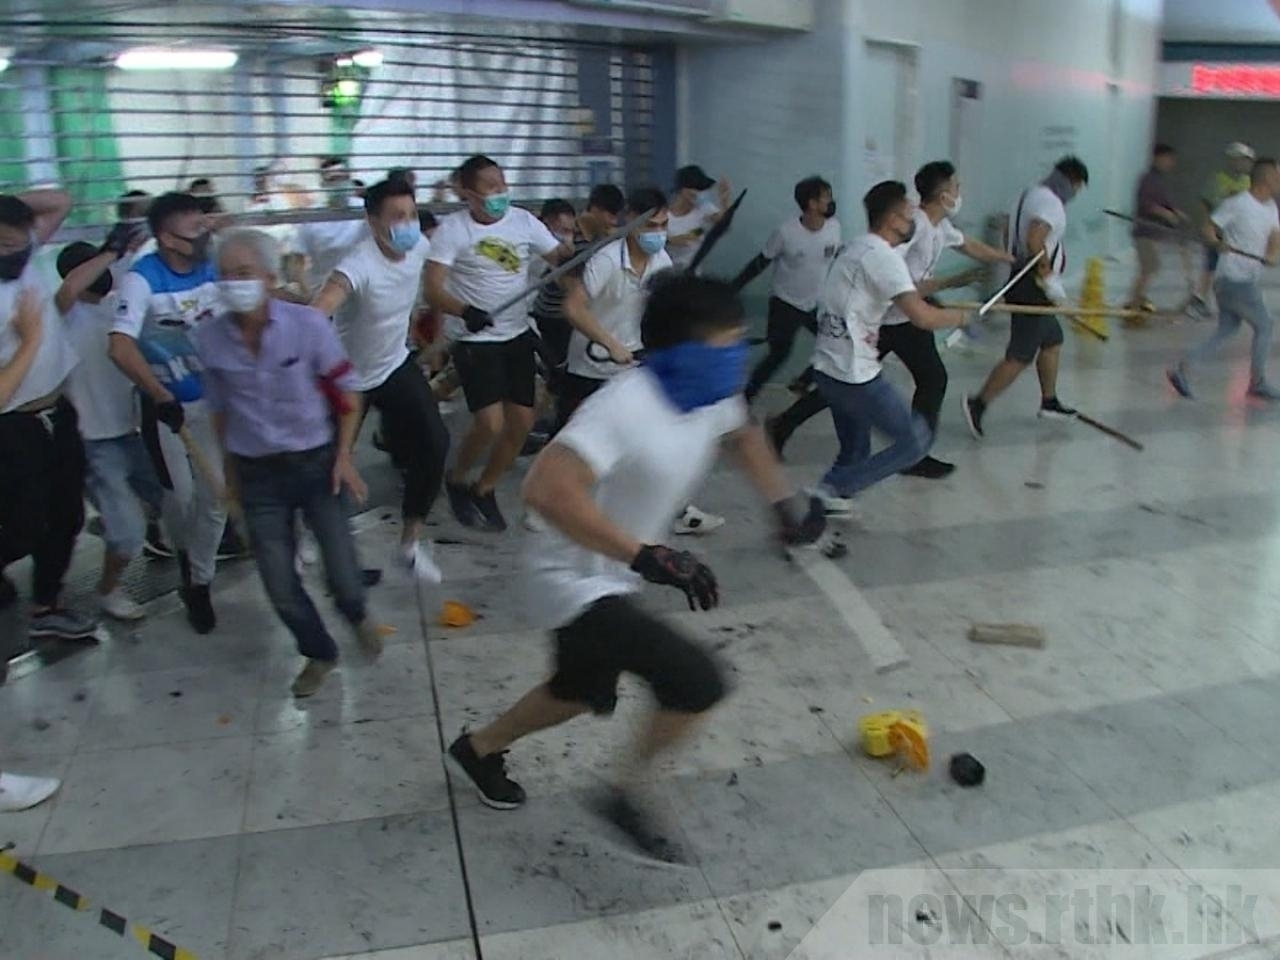 The judge had said the attackers seemed to have lost their minds. File photo: RTHK